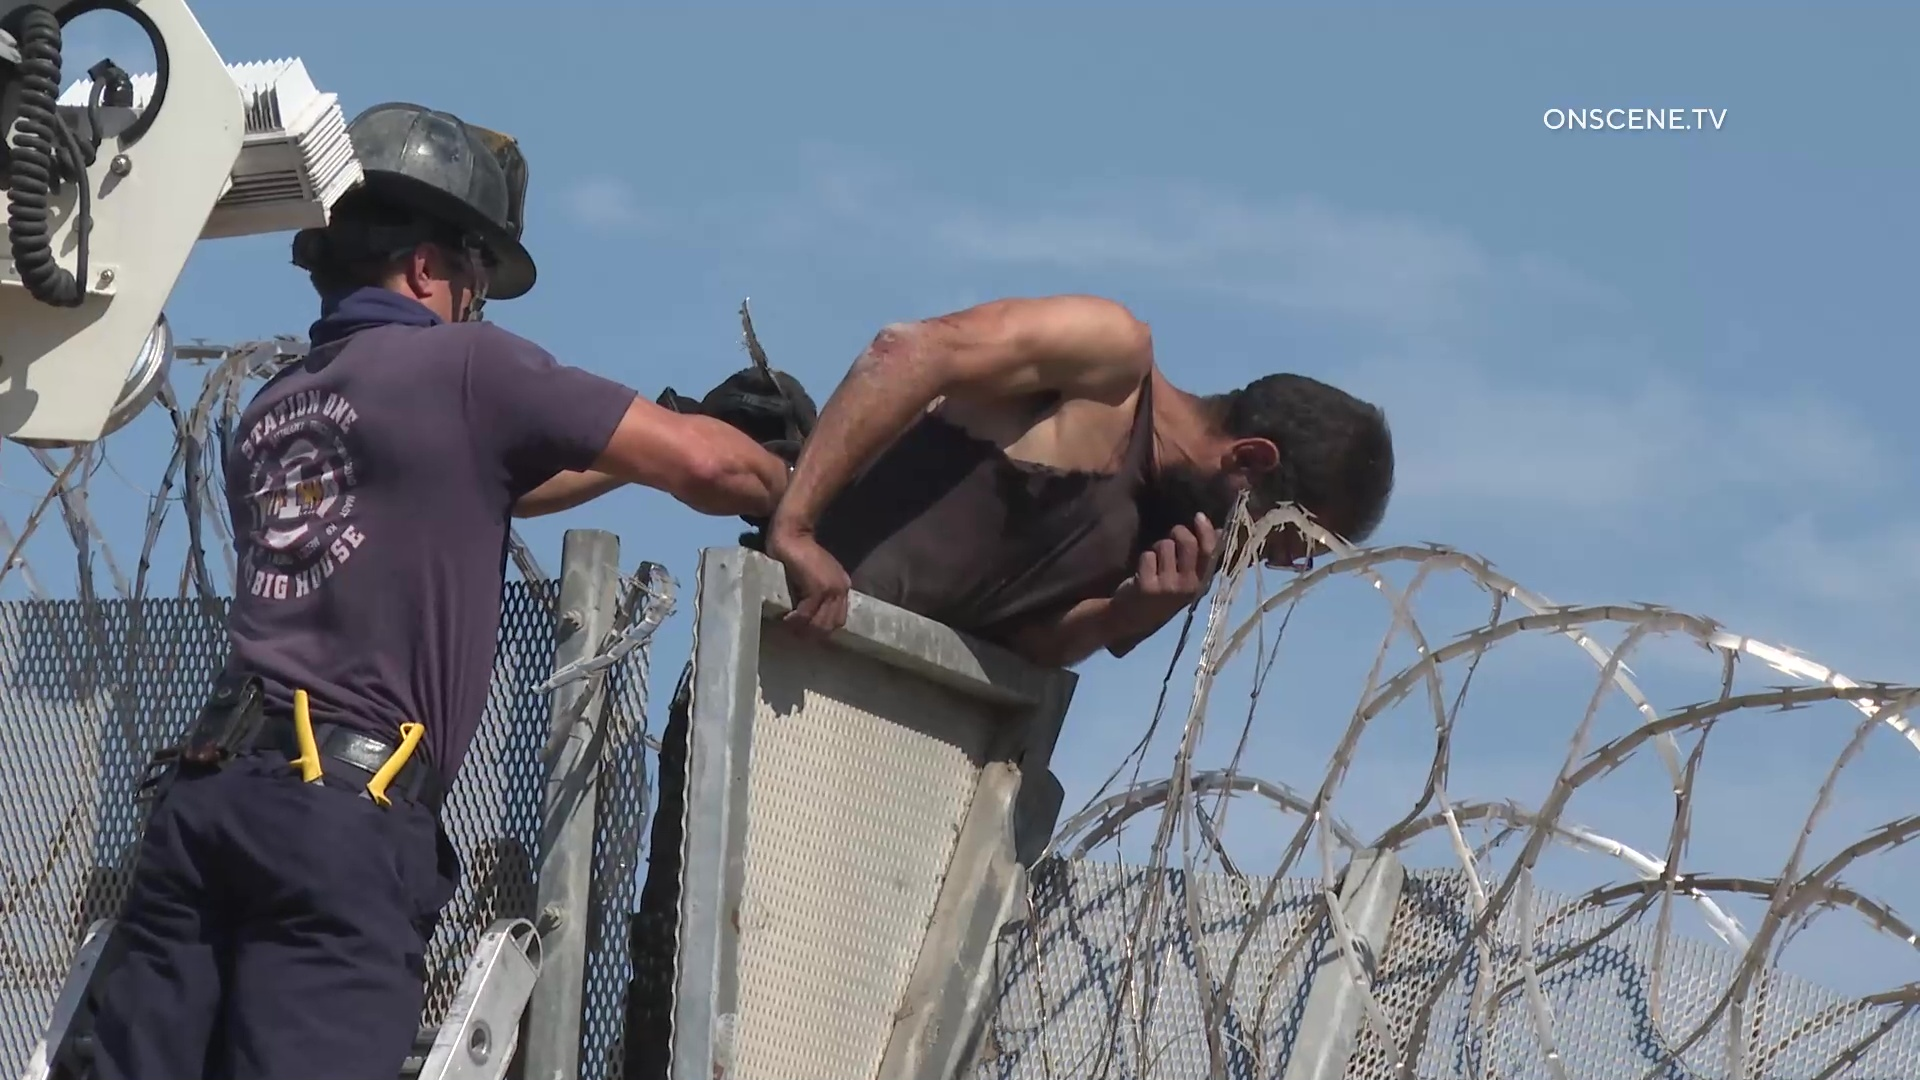 Border Wall Hopper Gets Rescued After Getting Stuck – ONSCENE.TV